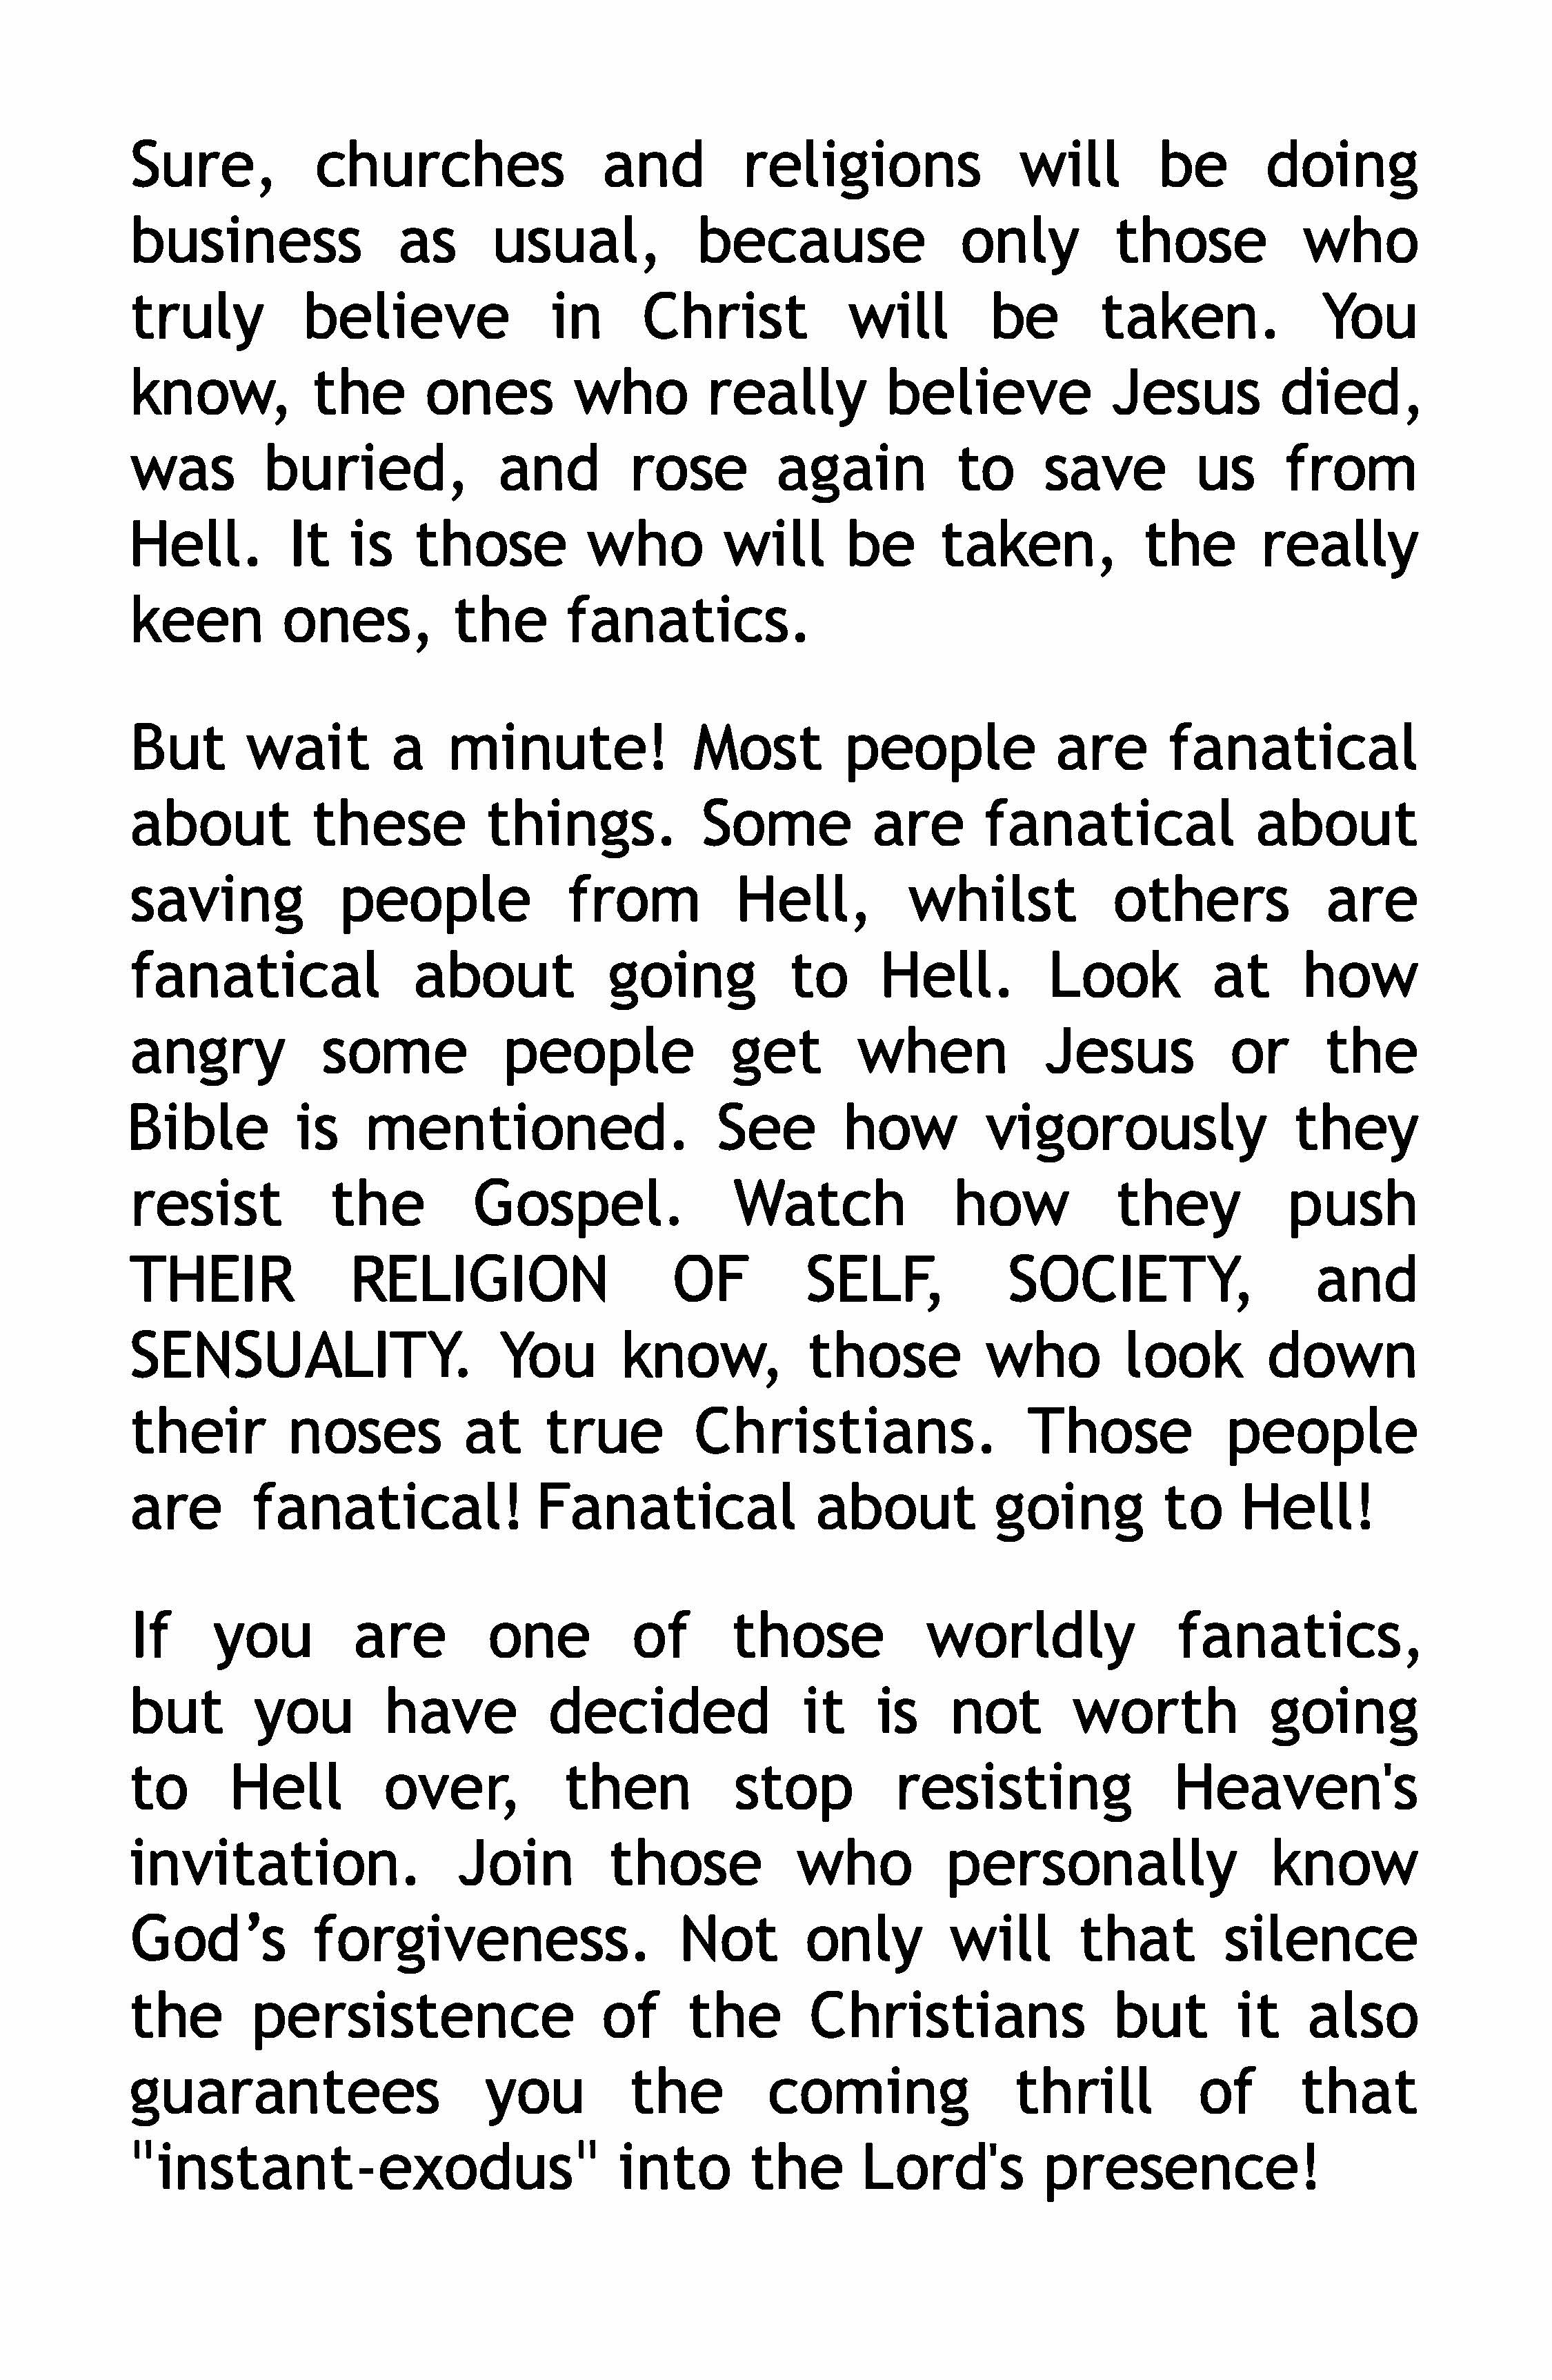 How to Get Rid of Religious Fanatics 060919 page 3